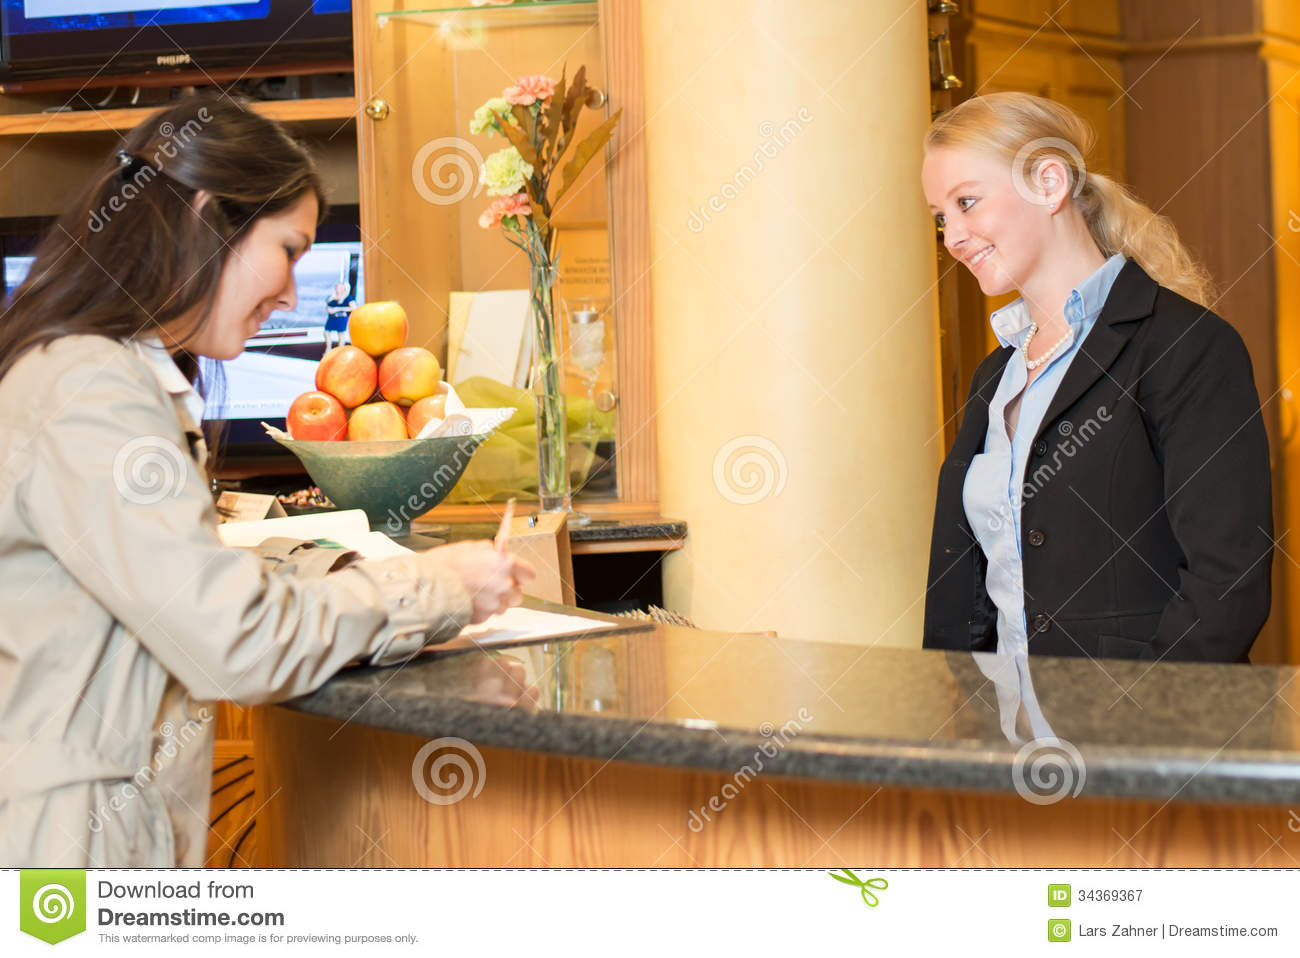 Young Woman At The Hotel Reception Stock Image - Image of ...